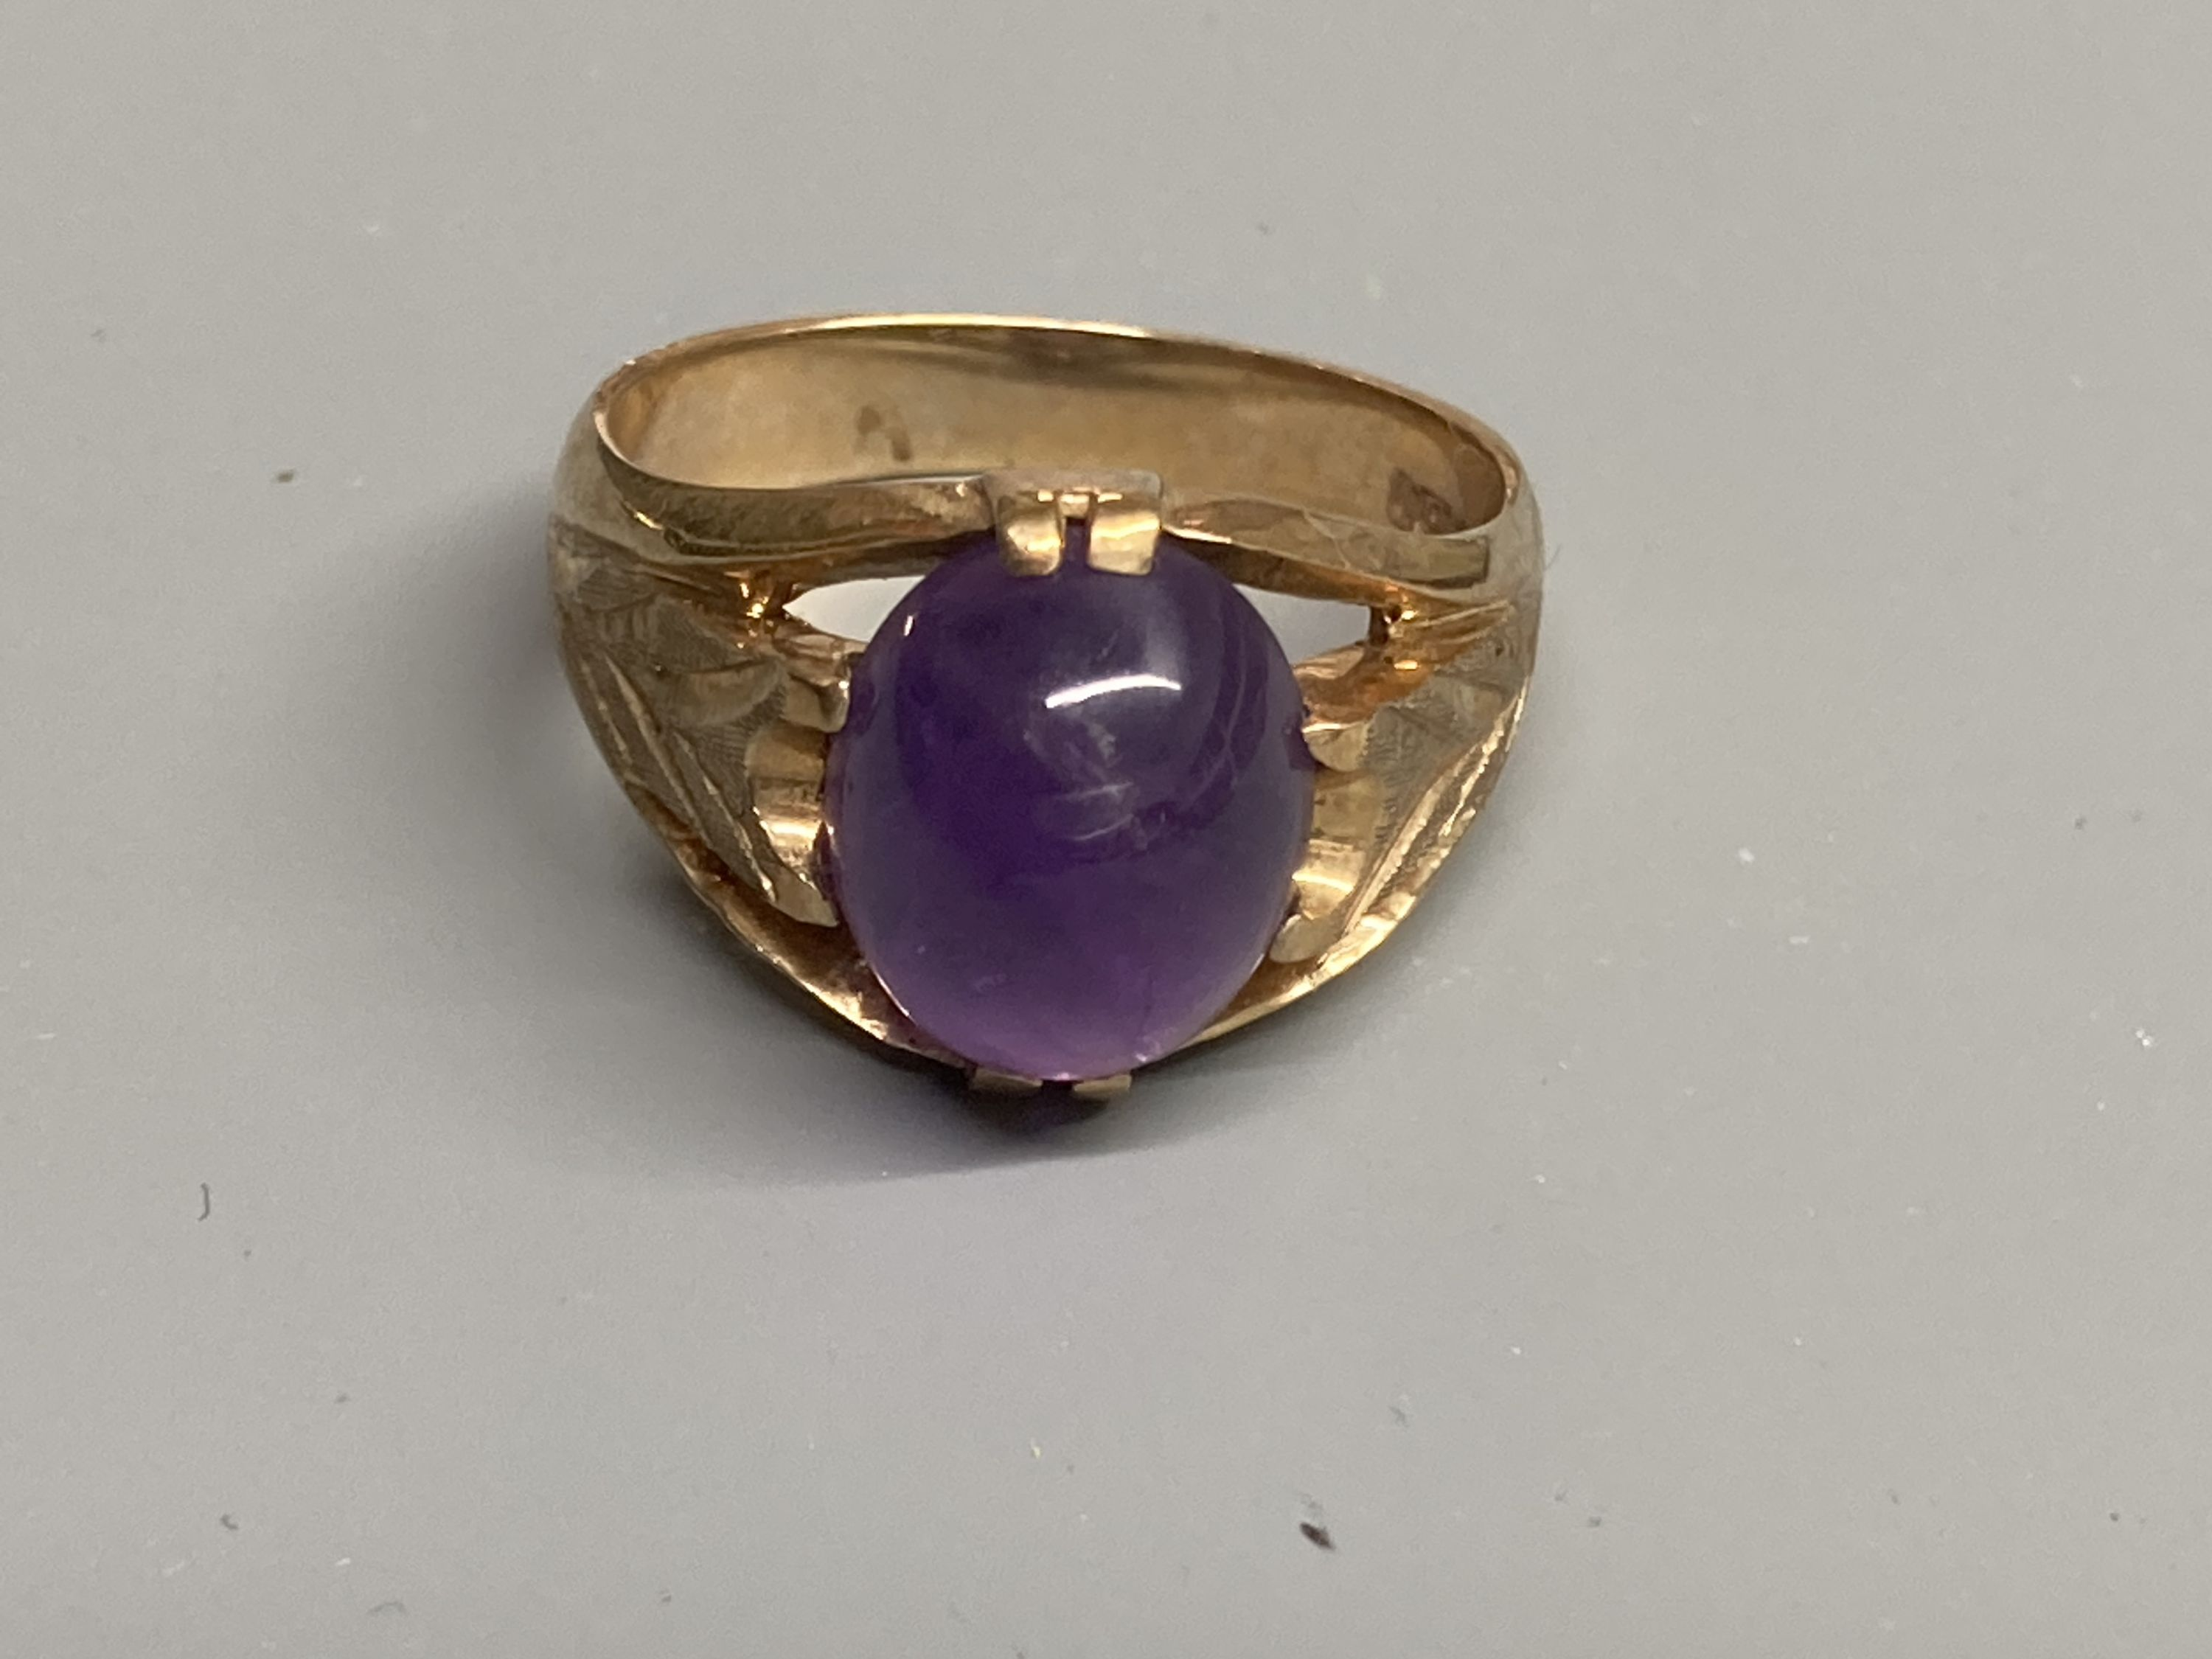 Two modern 9ct gold and cabochon amethyst set dress rings, sizes Q/R & T,gross 11.6 grams. - Image 3 of 4